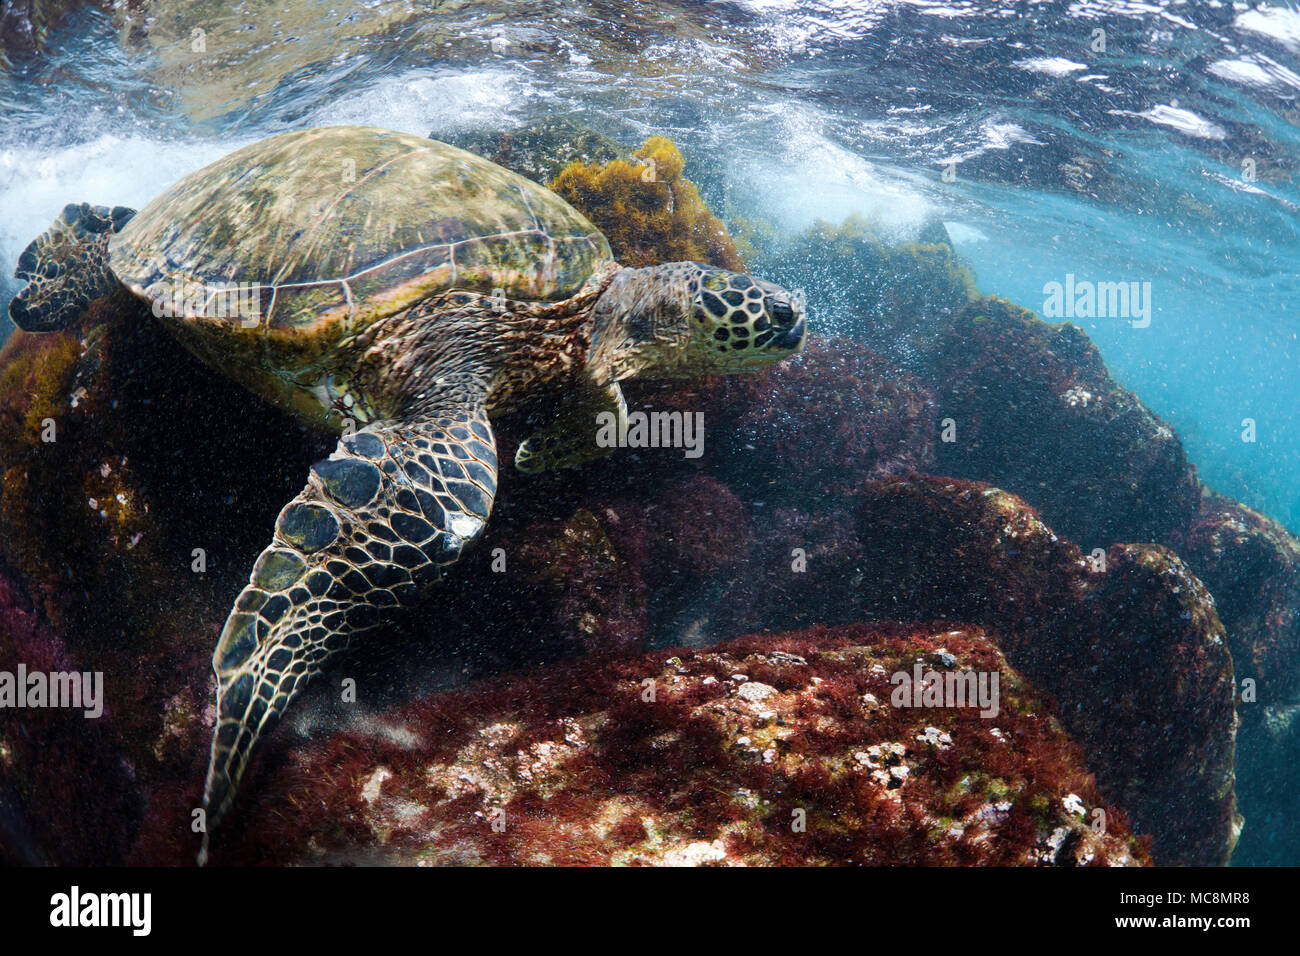 This green sea turtle, Chelonia mydas, an endangered species, is braving the rocky surge swept shallows for a bite of red seaweed off West Maui, Hawai Stock Photo